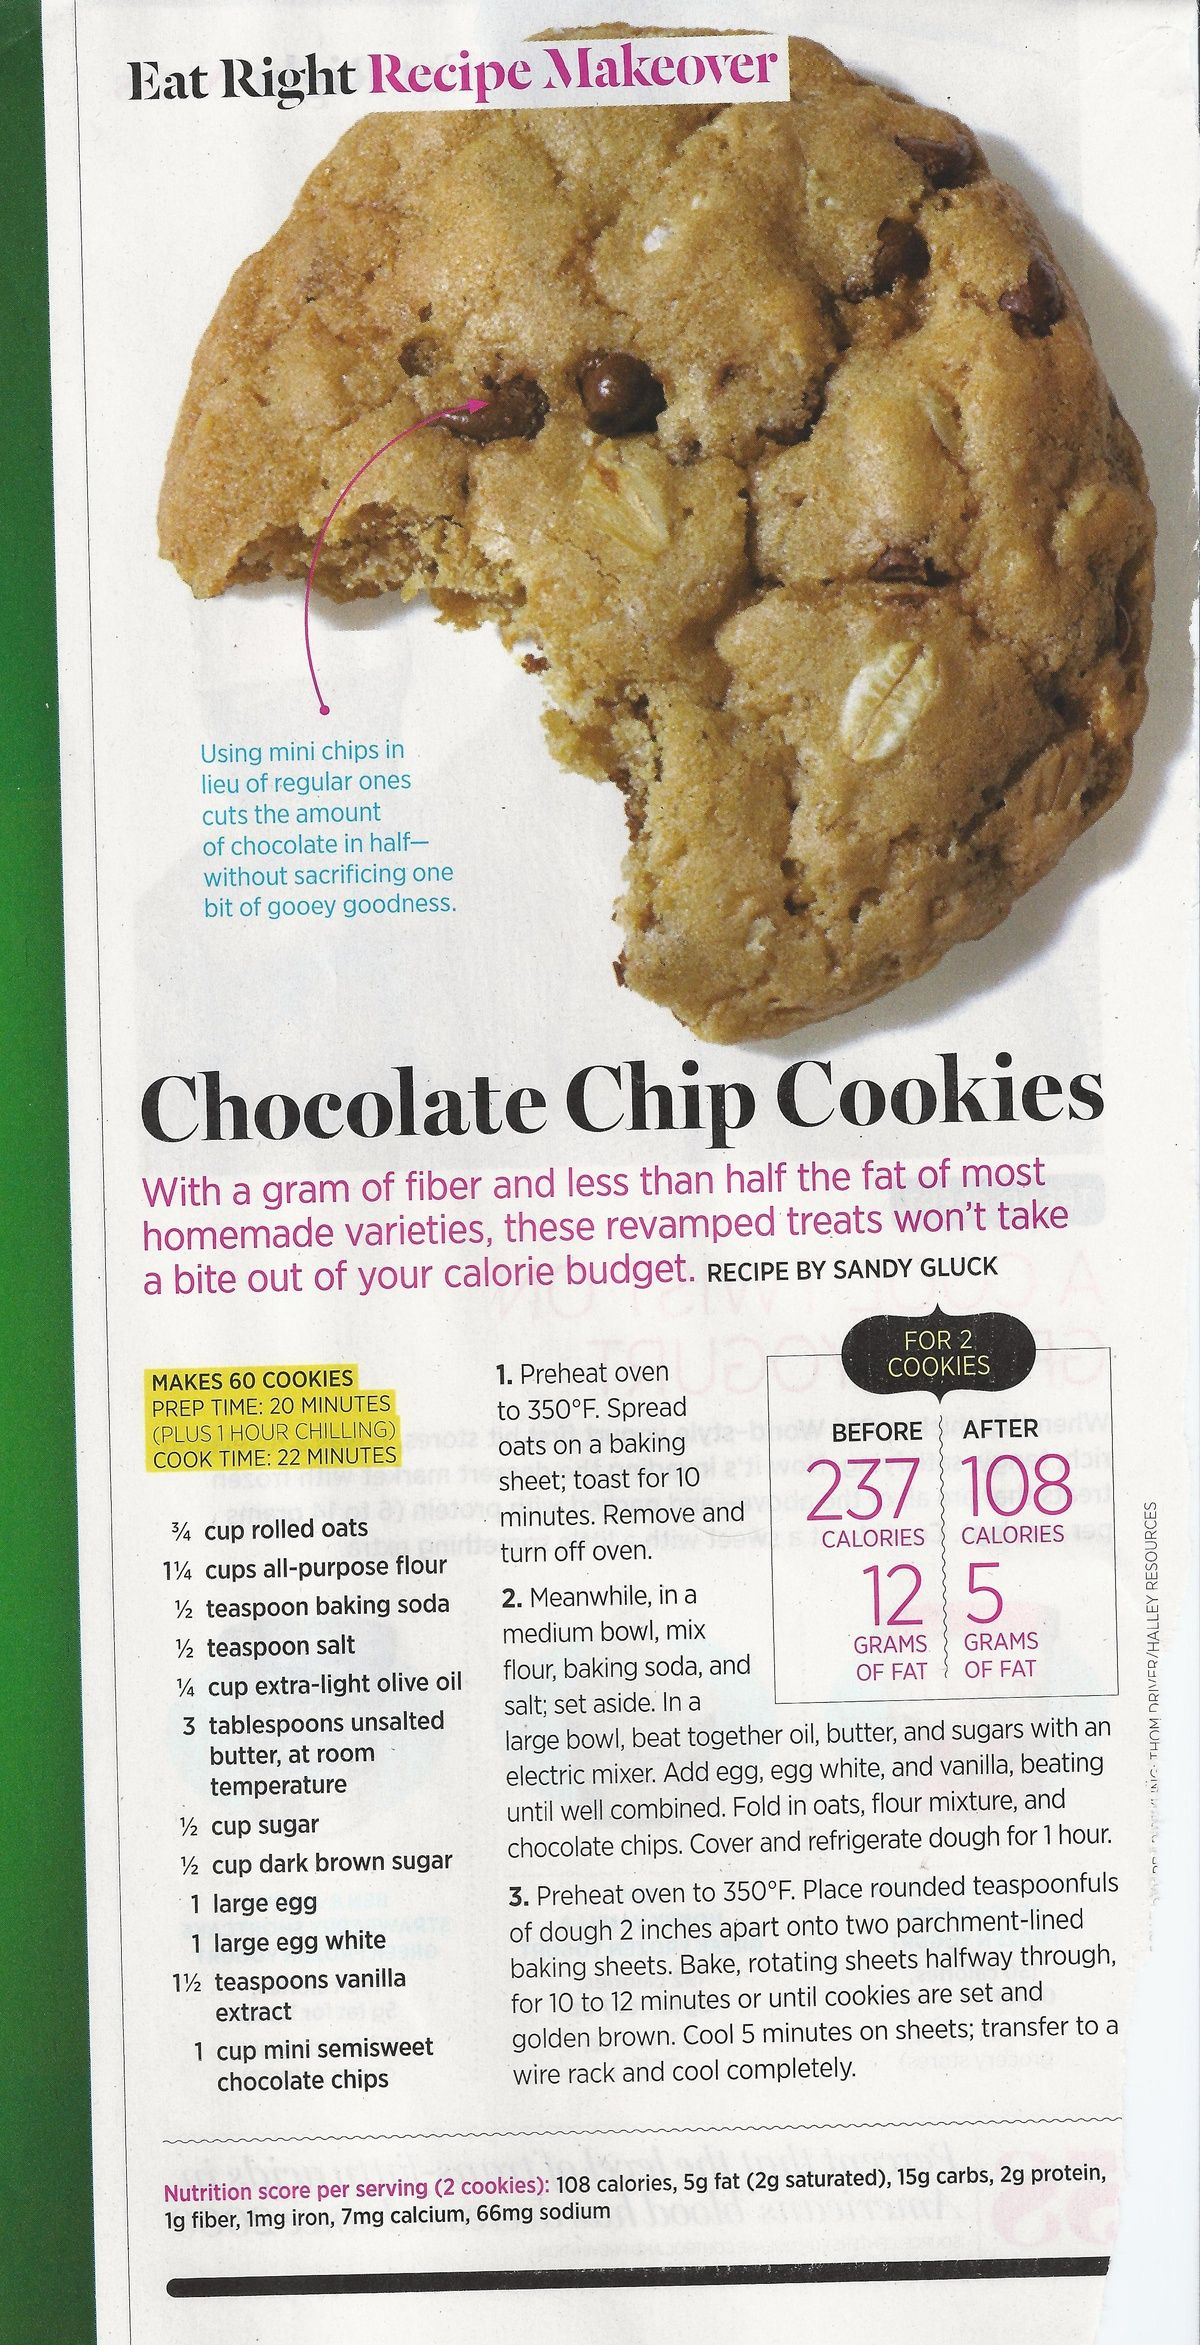 Choclate chip cookies!